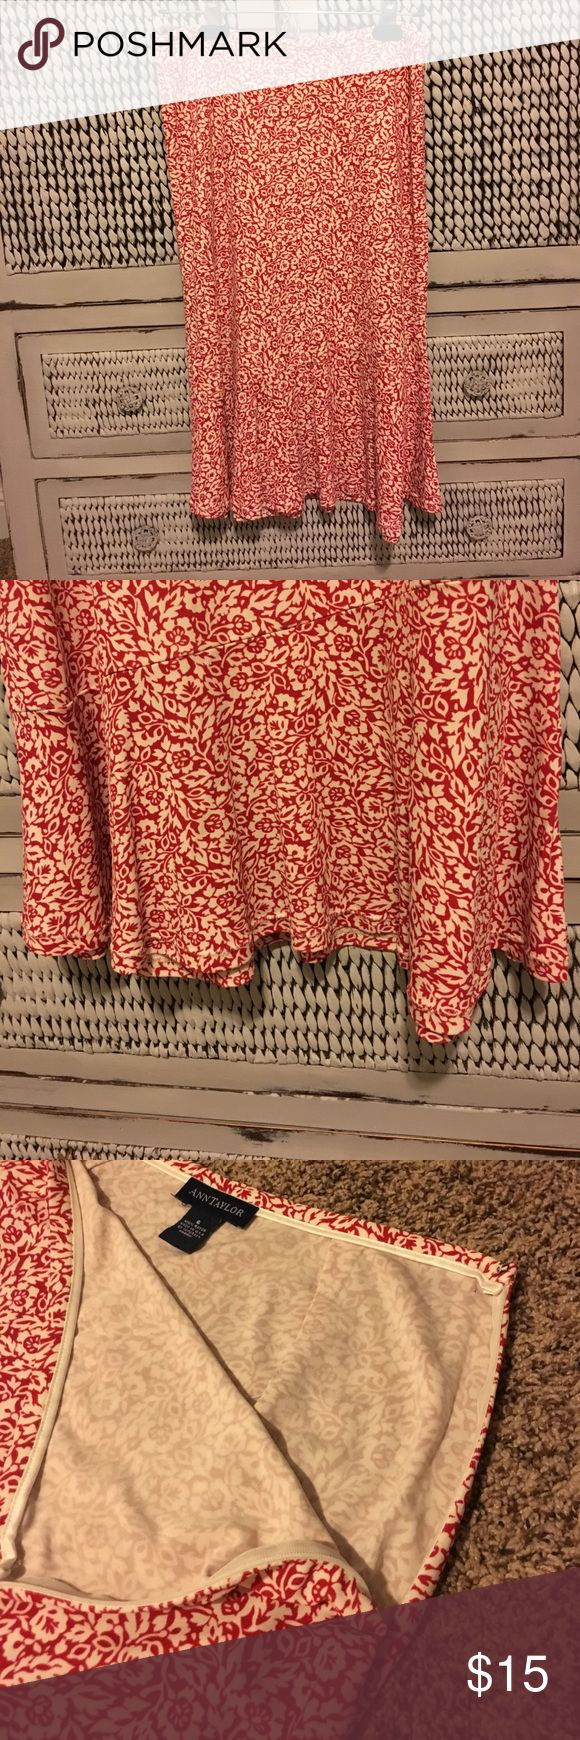 """ANN TAYLOR """"MIDI SKIRT"""" HOT TREND NOW! ANN TAYLOR """"""""midi skirt"""" hangs just below knees. Skirt hangs with a fluttering look at the bottom. Zip up side (see pic) 100% rayon. Red with a white floral pattern.  Excellent condition.  Women's size 6. SOOO CUTE😍 Ann Taylor Skirts Midi"""